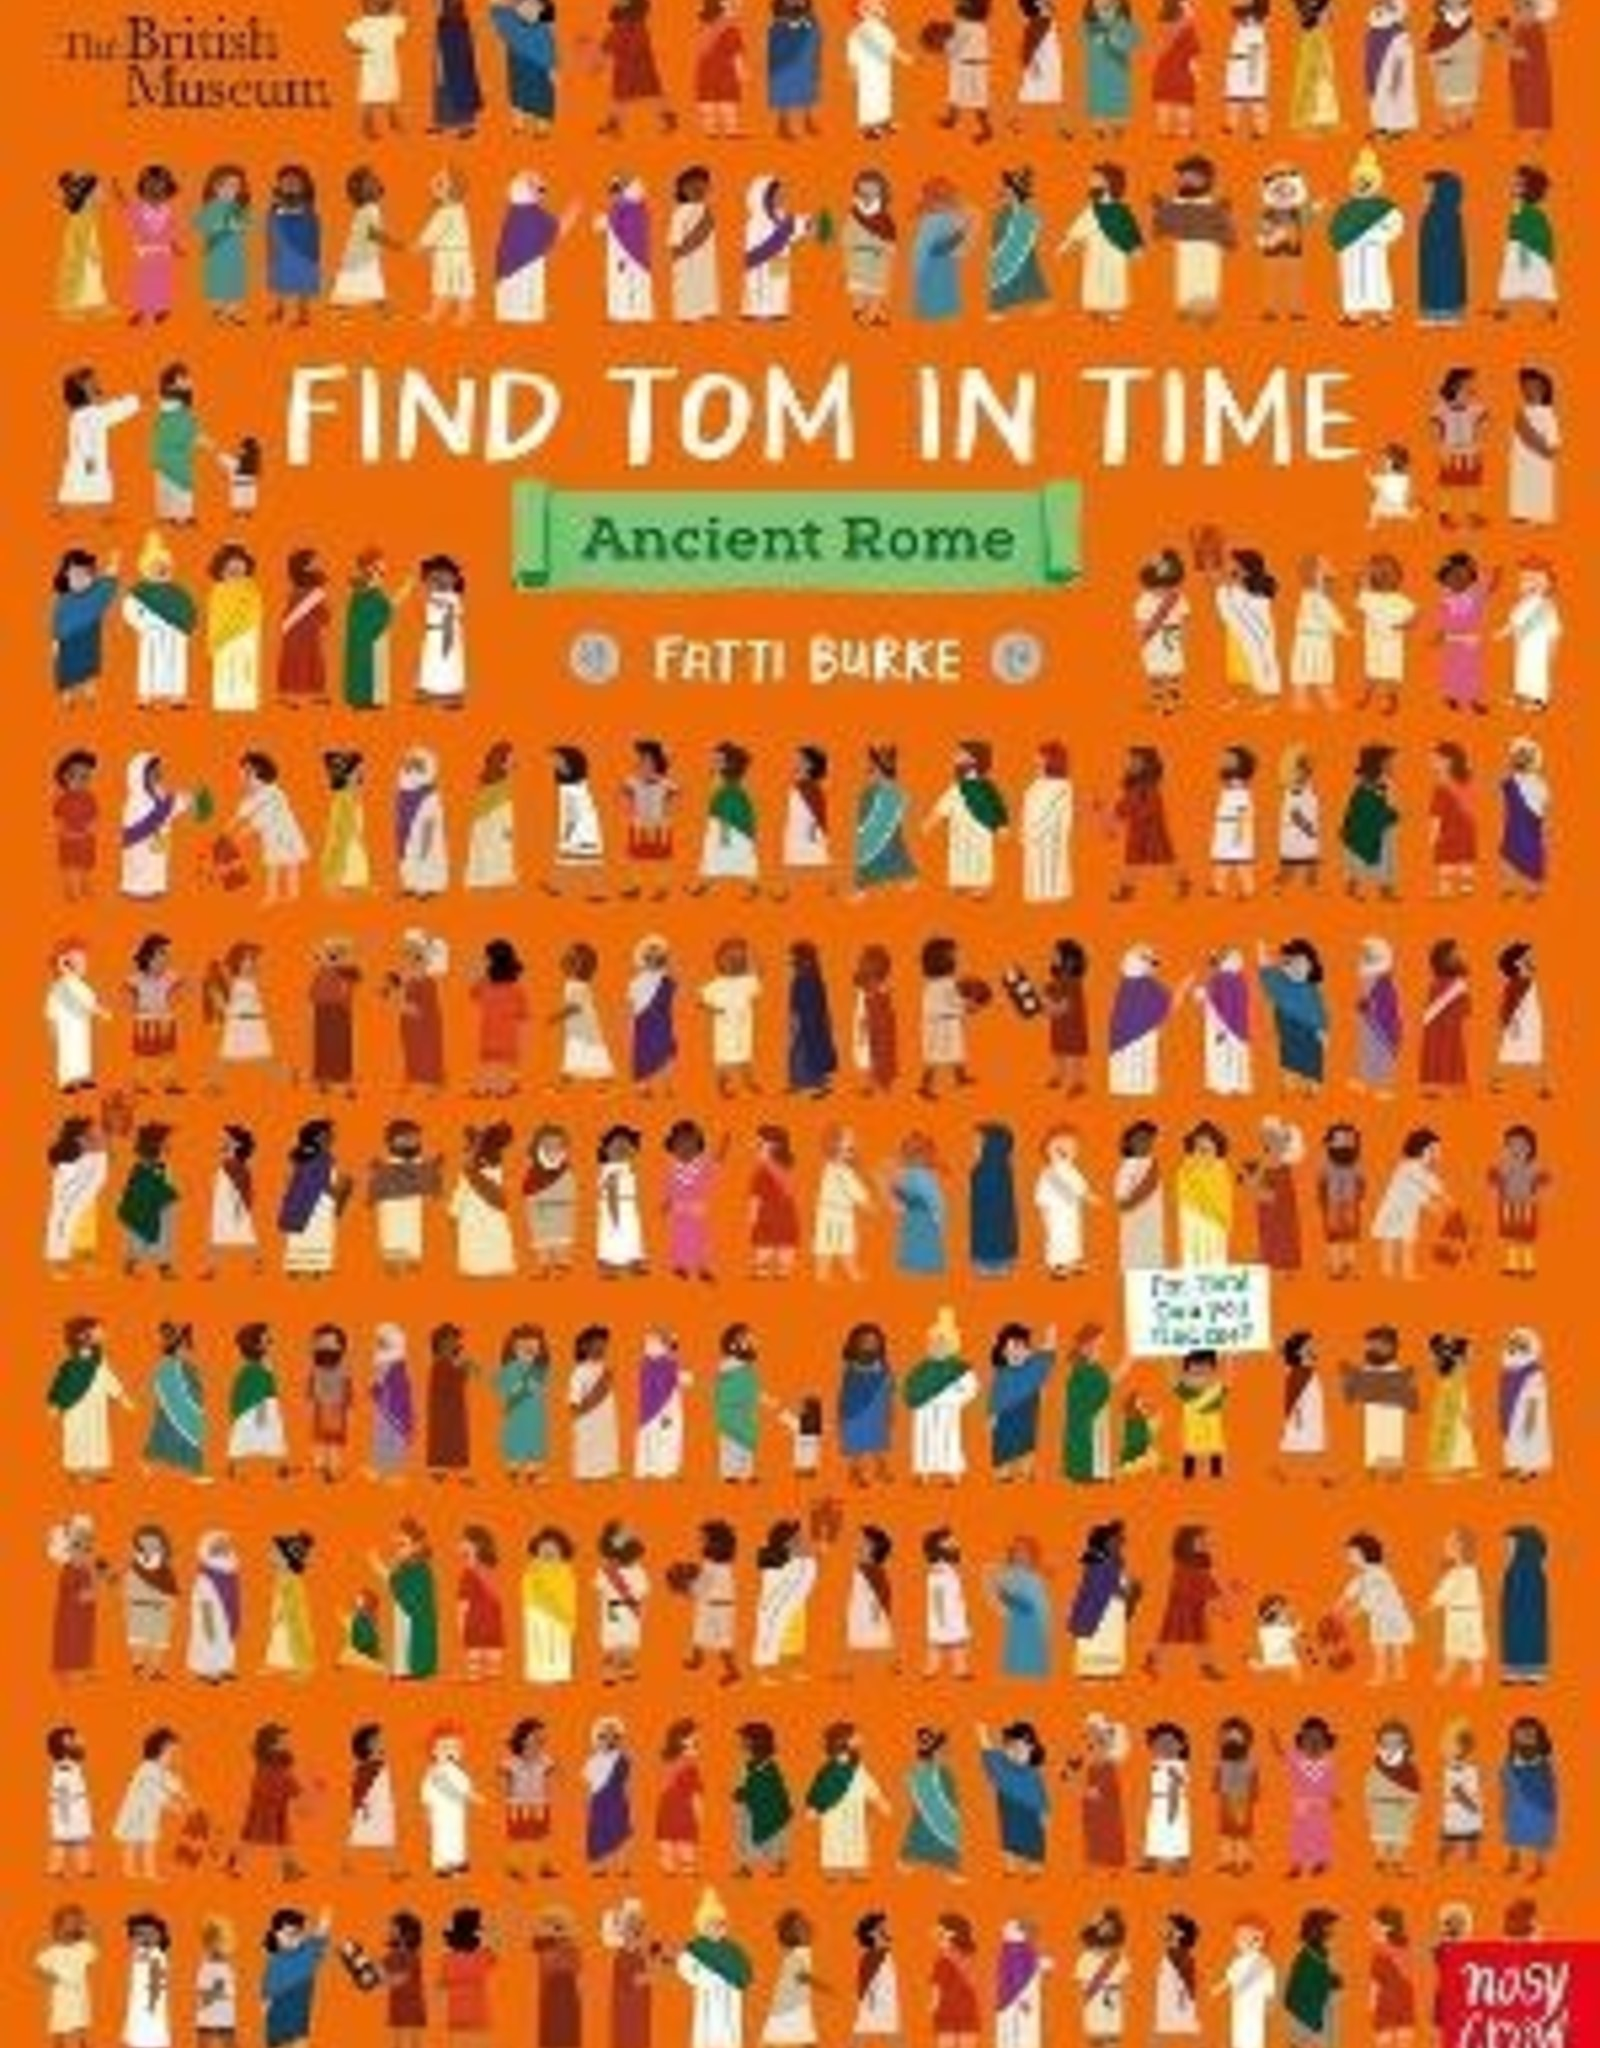 Nosy Crow The British Museum: Find Tom in Time Ancient Rome